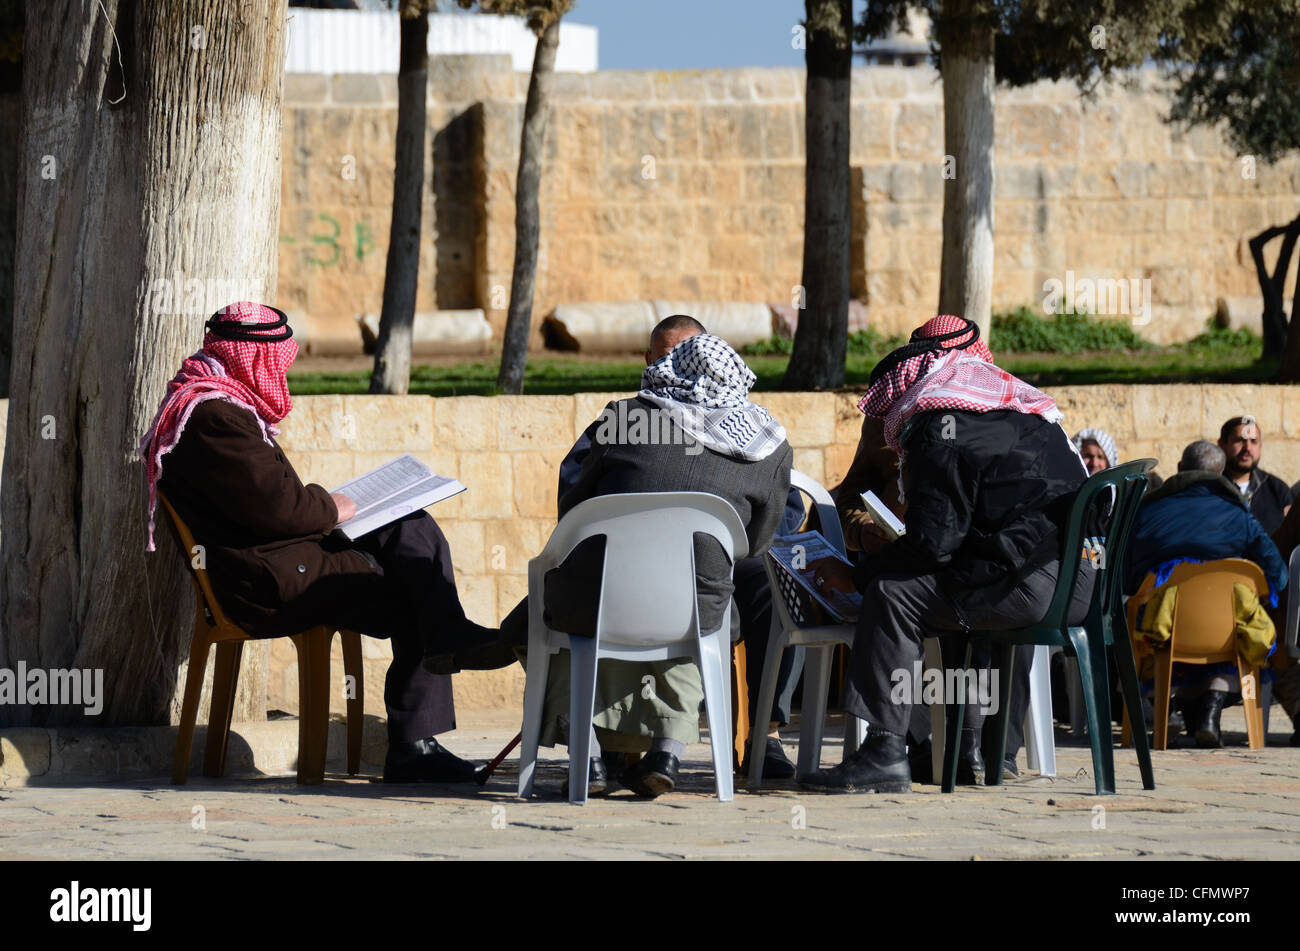 Islamic religious discussion atop the Temple Mount in the old city of Jerusalem, Israel. - Stock Image